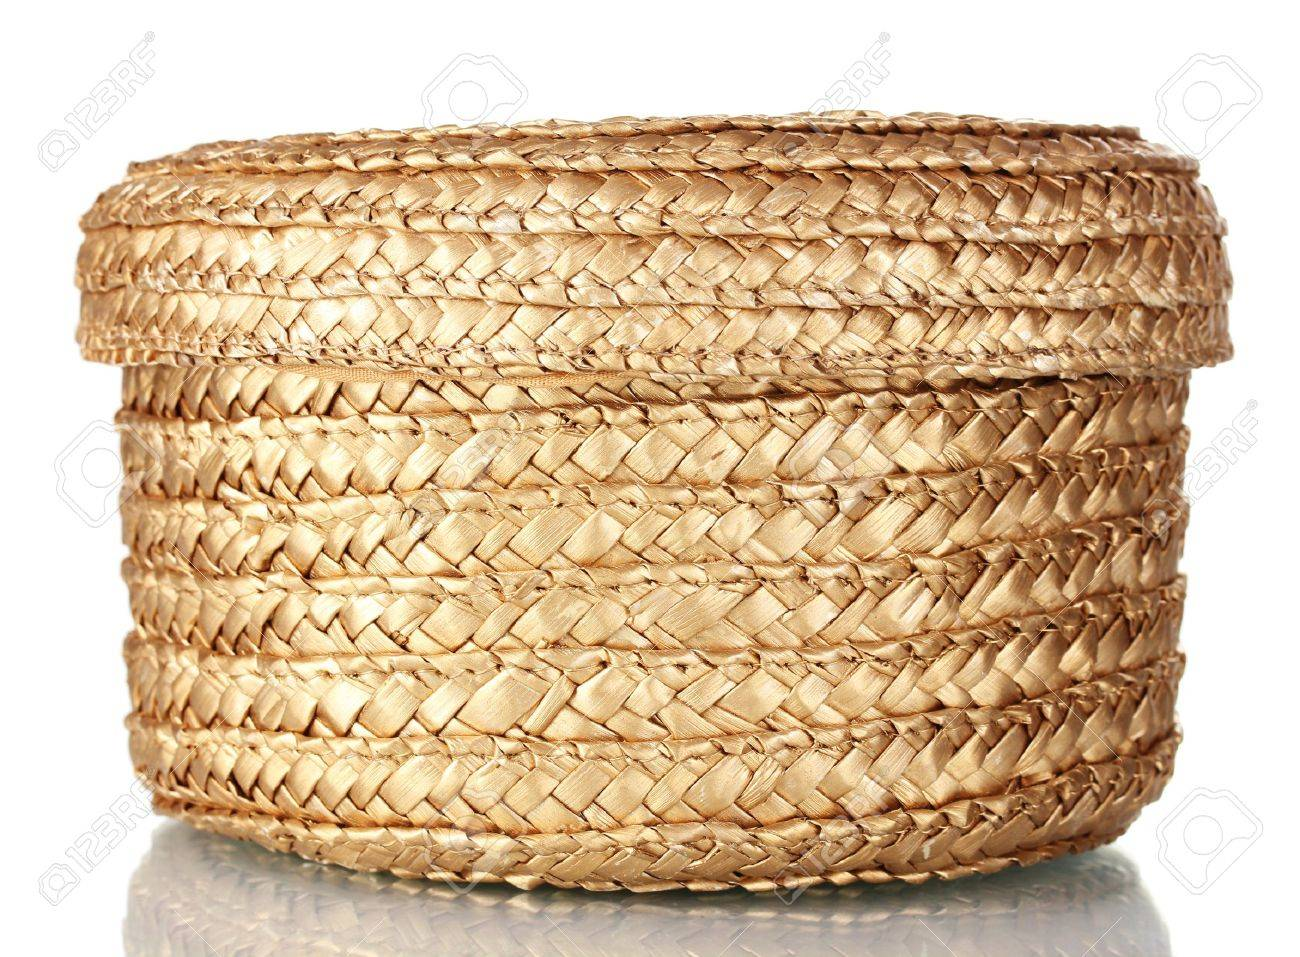 Stock Photo - decorative empty wicker basket with lid isolated on white